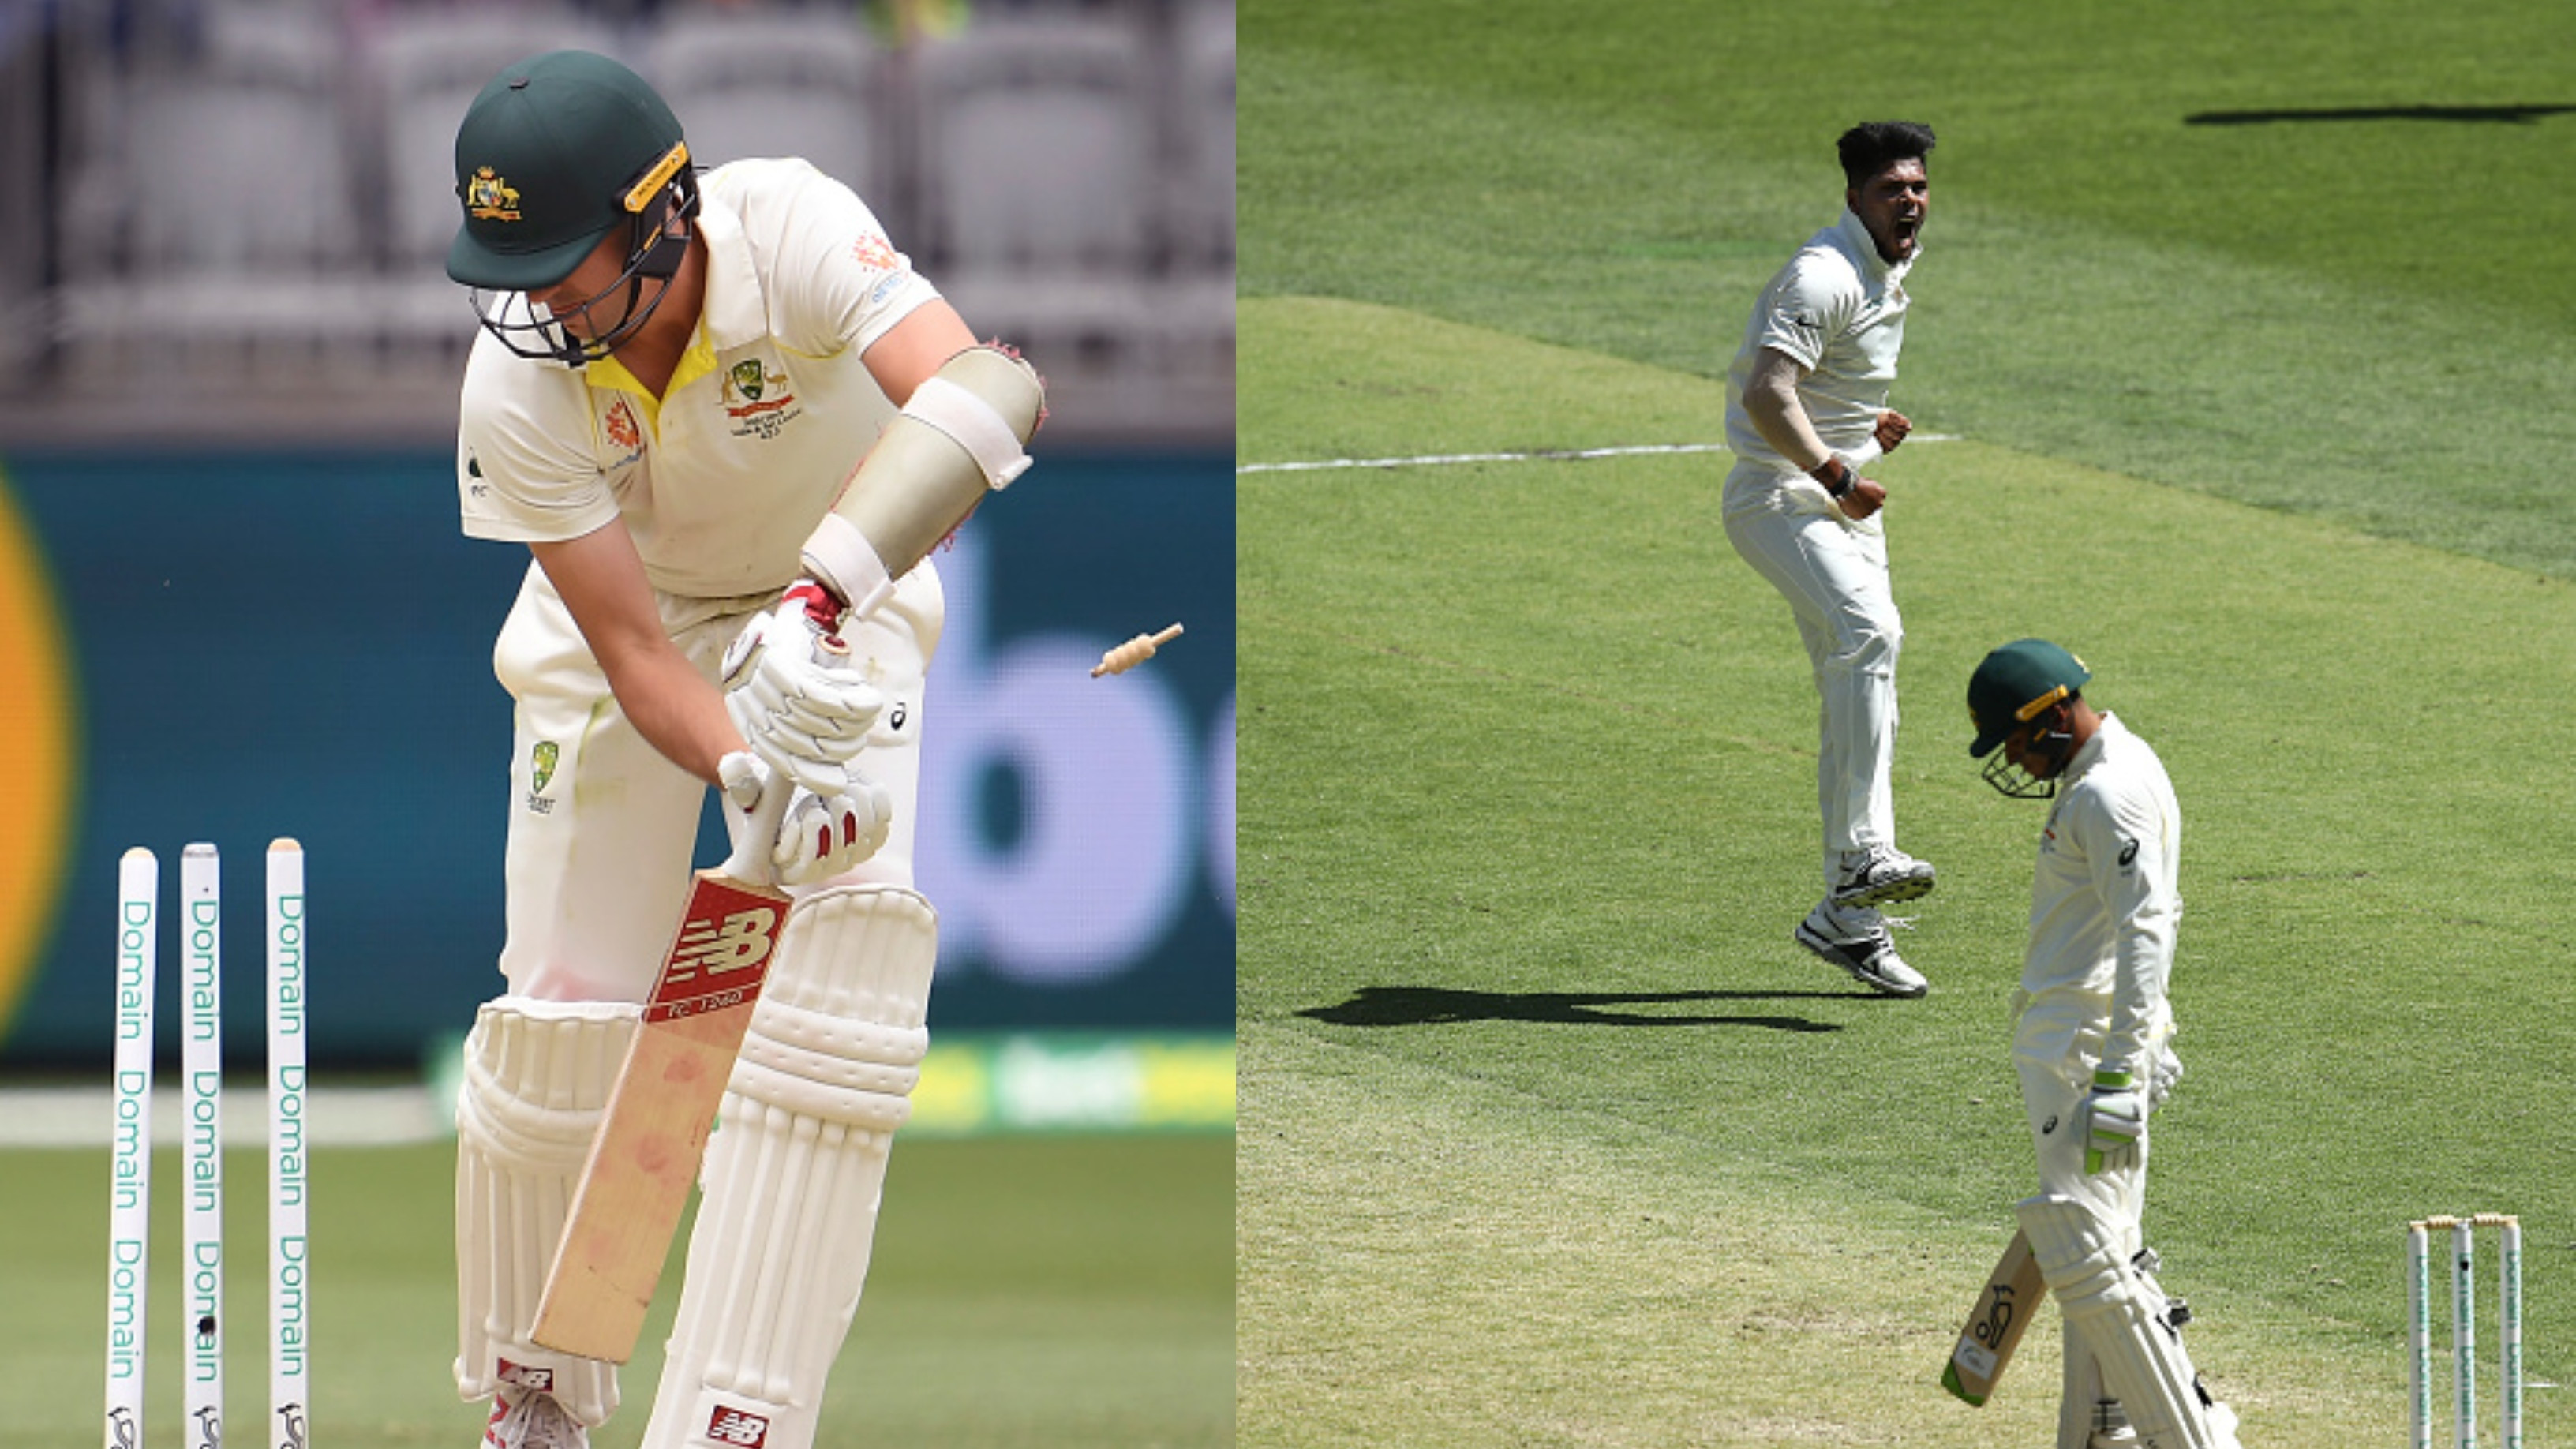 AUS v IND 2018-19: WATCH -Umesh Yadav stuns Pat Cummins with a dream delivery in Perth